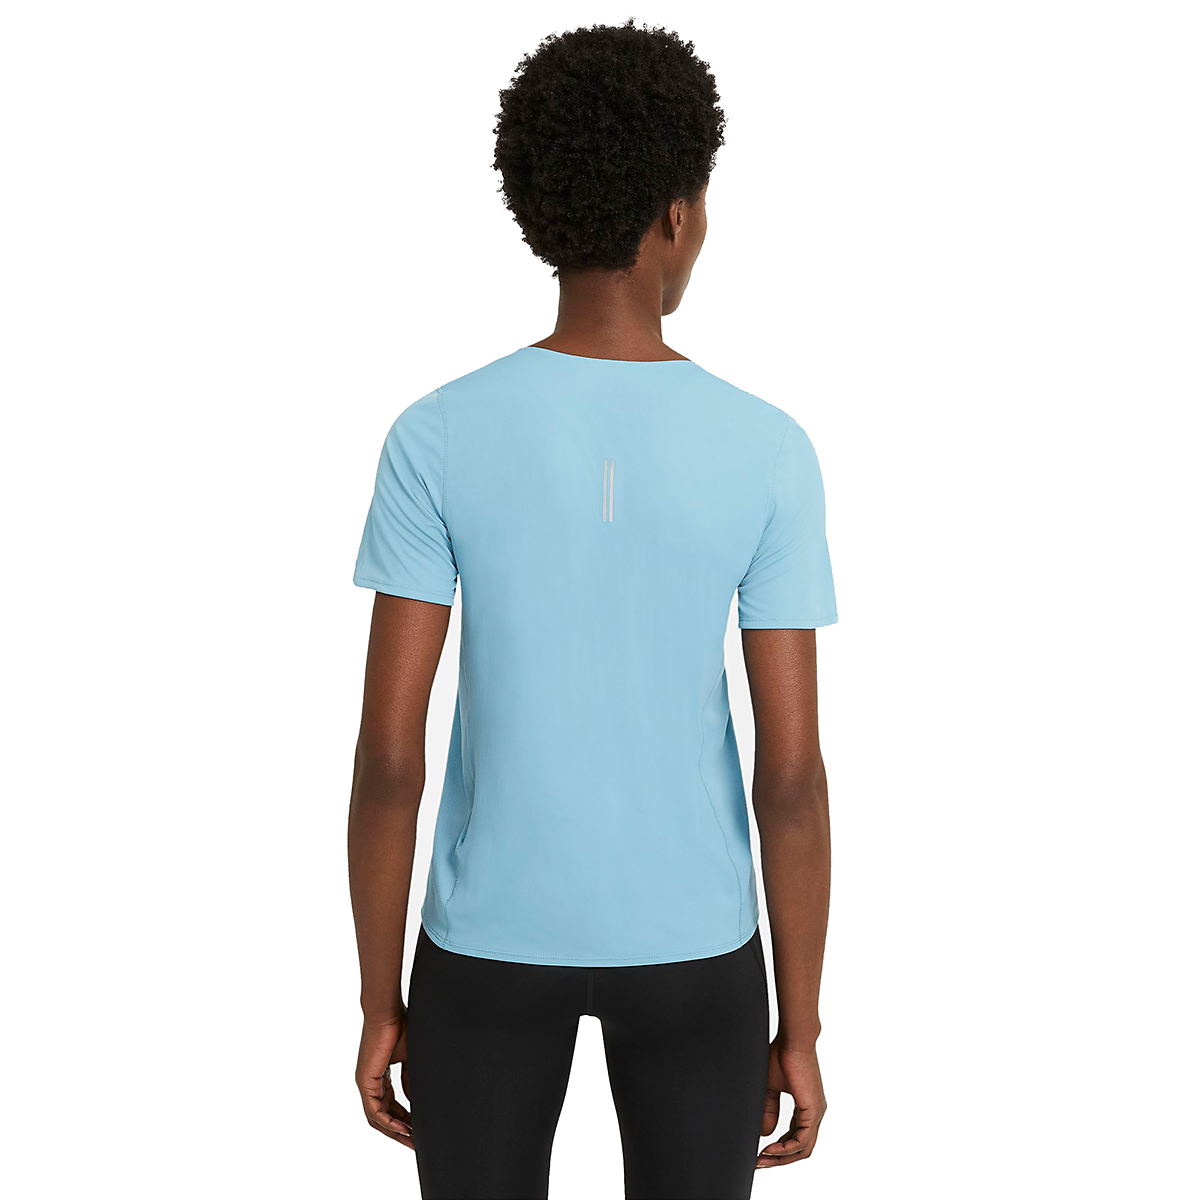 Women's Nike City Sleek Short Sleeve Top - Color: Cerulean/Reflective Silver - Size: XS, Cerulean/Reflective Silver, large, image 4